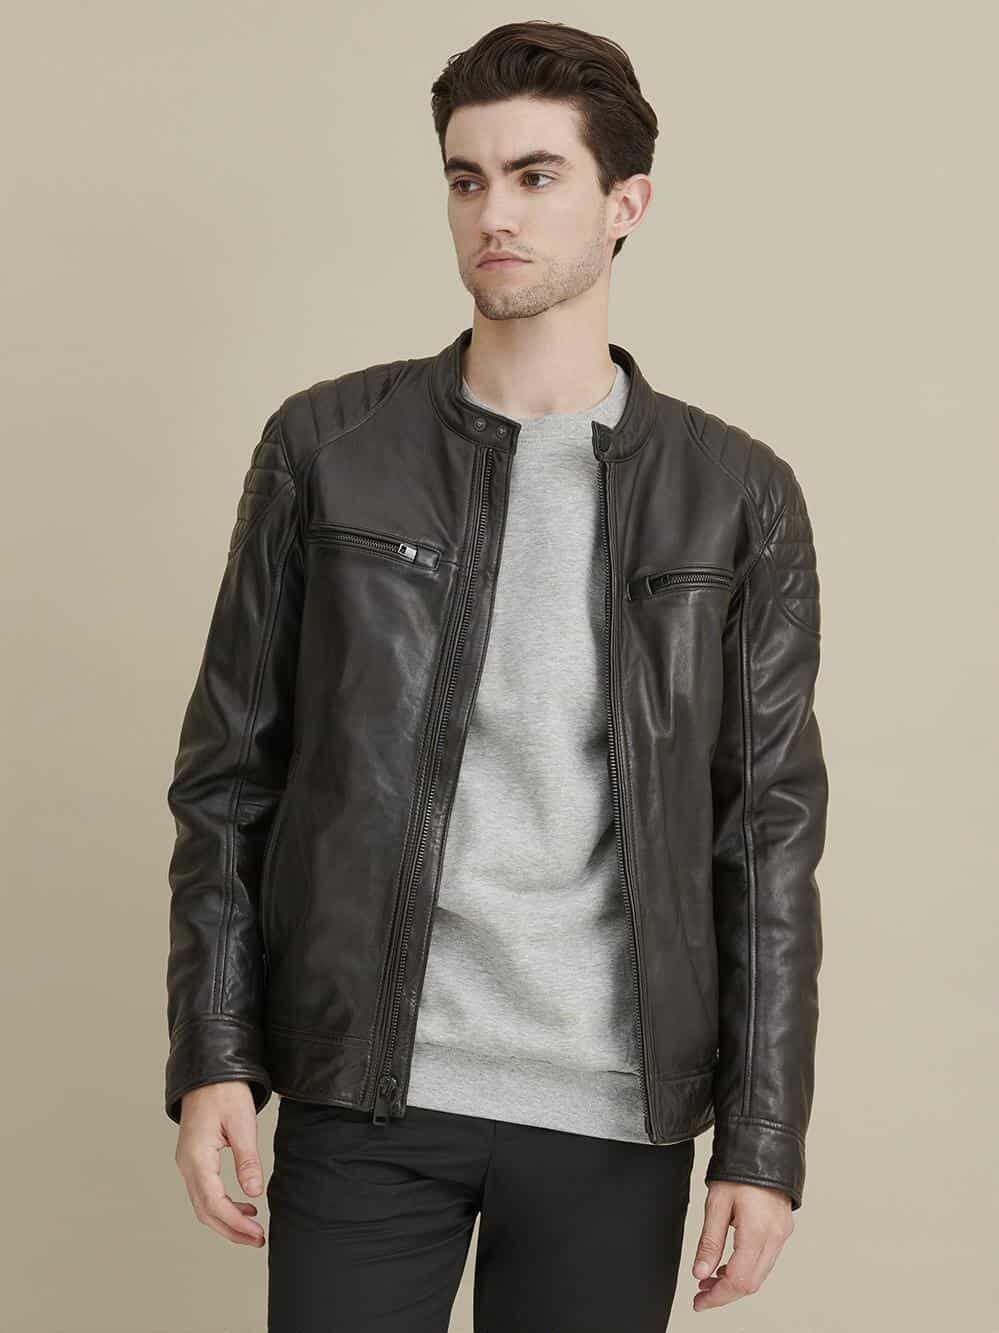 leather gift for him: leather jacket